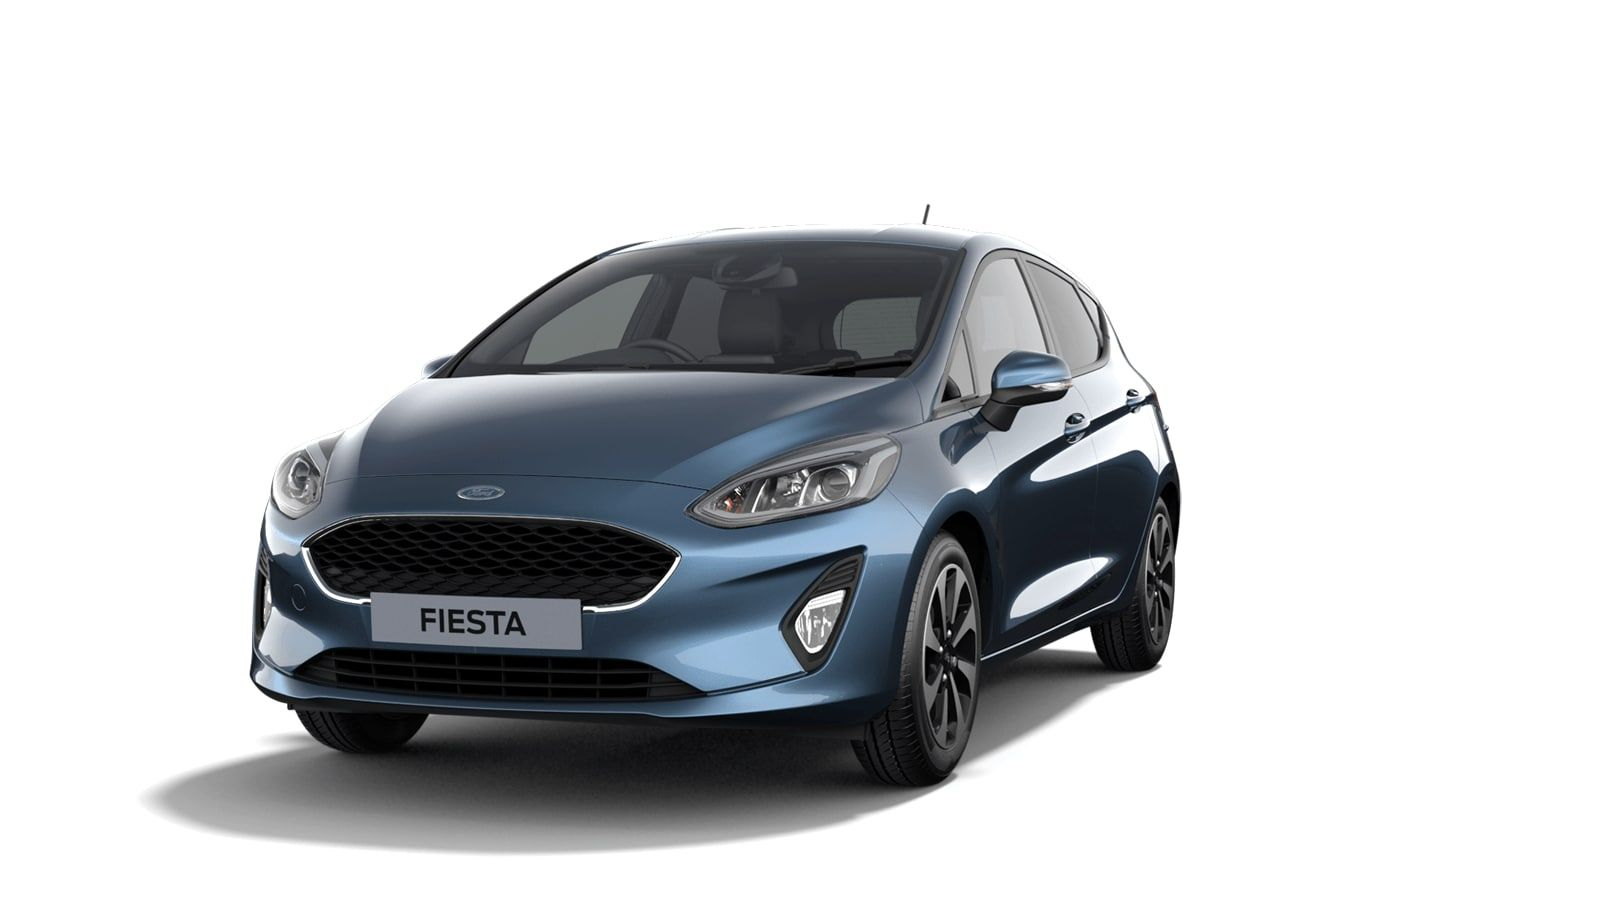 """Nieuw Ford All-new ford fiesta Connected 1.0i EcoBoost 95pk / 70kW M6 - 5d JKC - Metaalkleur """"Chrome Blue"""" 1"""